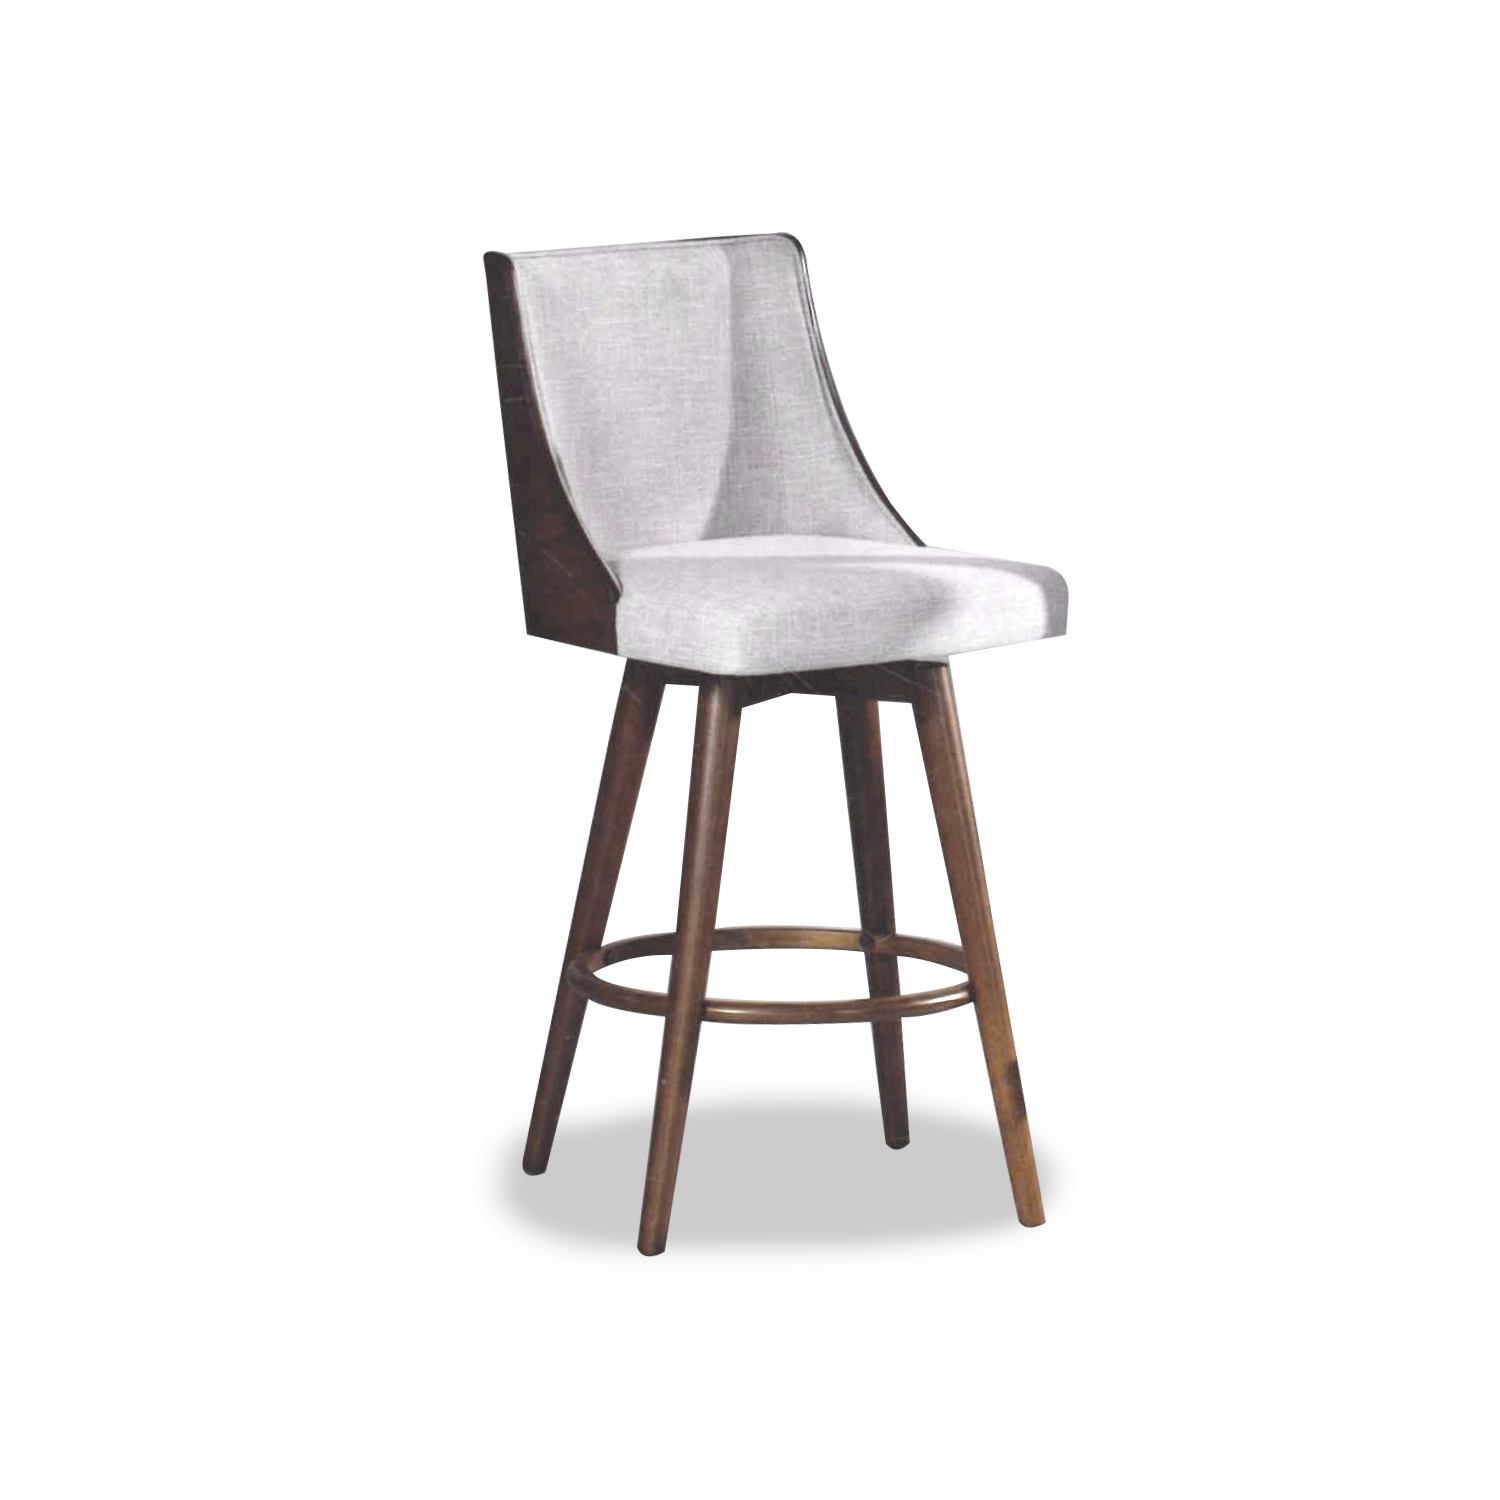 Bar Chair 3538